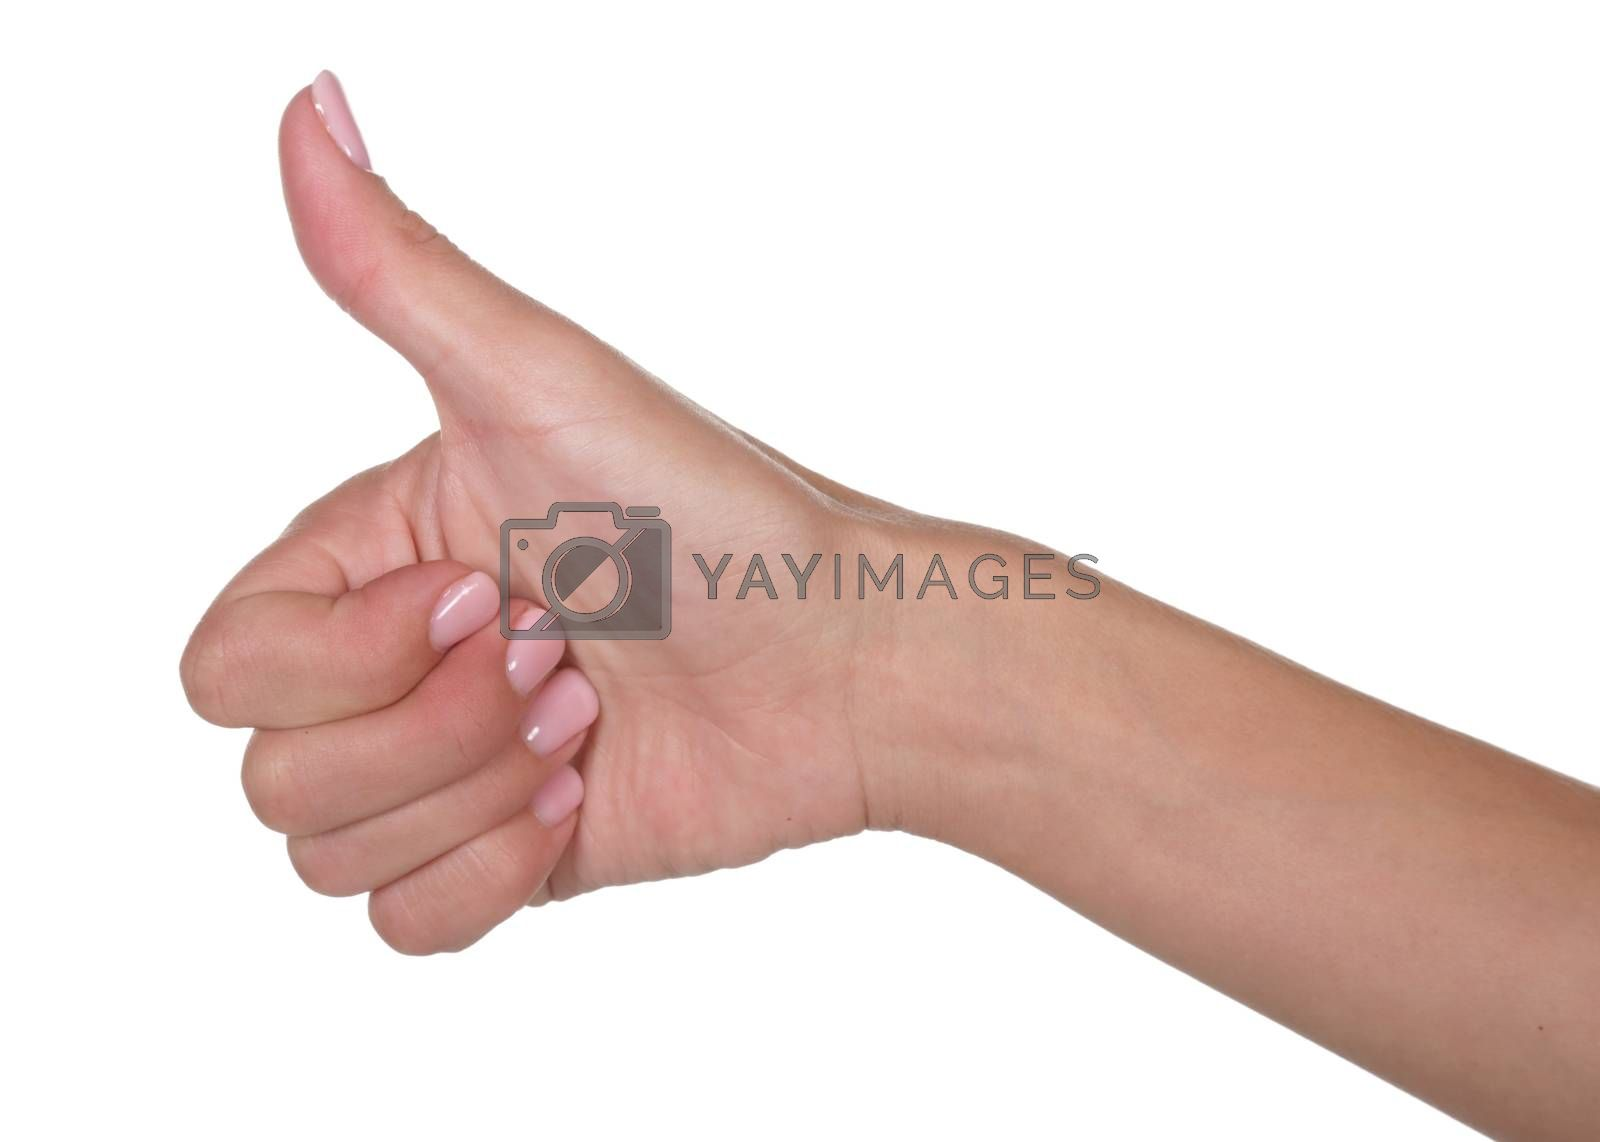 Royalty free image of Thumbs Up Positive Sign by fouroaks